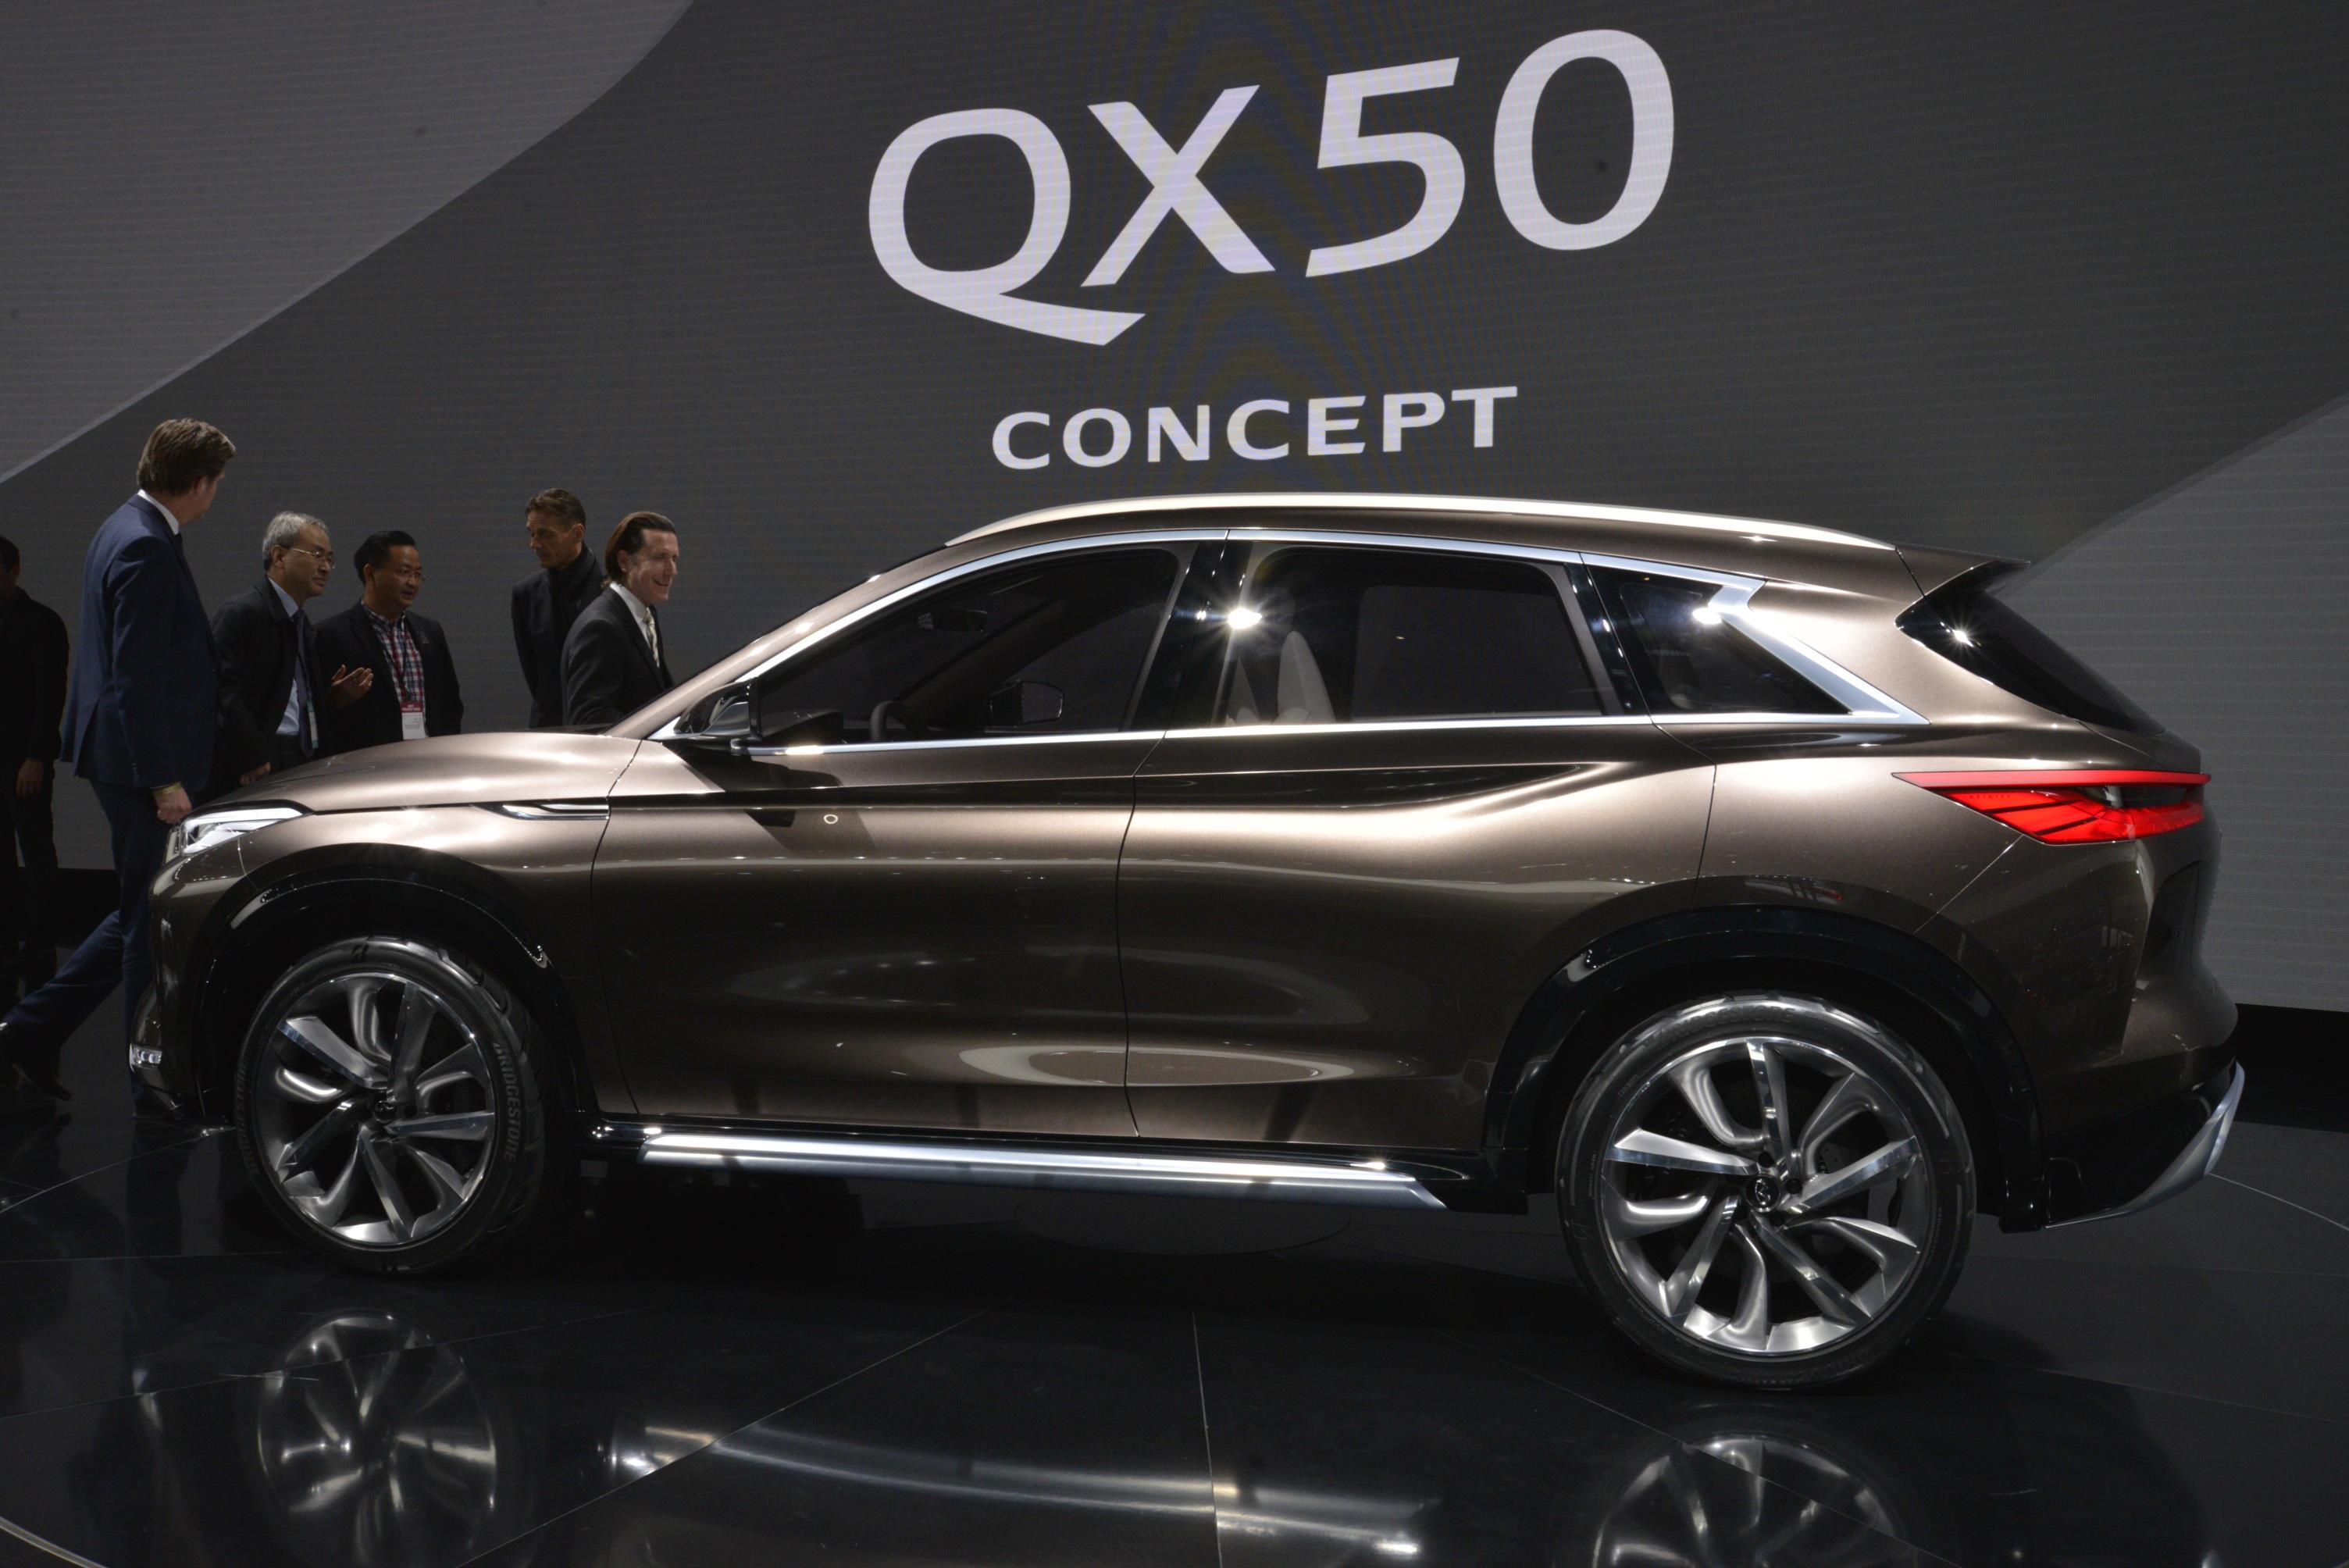 compression comes photos first infiniti car cheese says crossover is camera a the concept engine news production infinity into with live to naias focus variable new